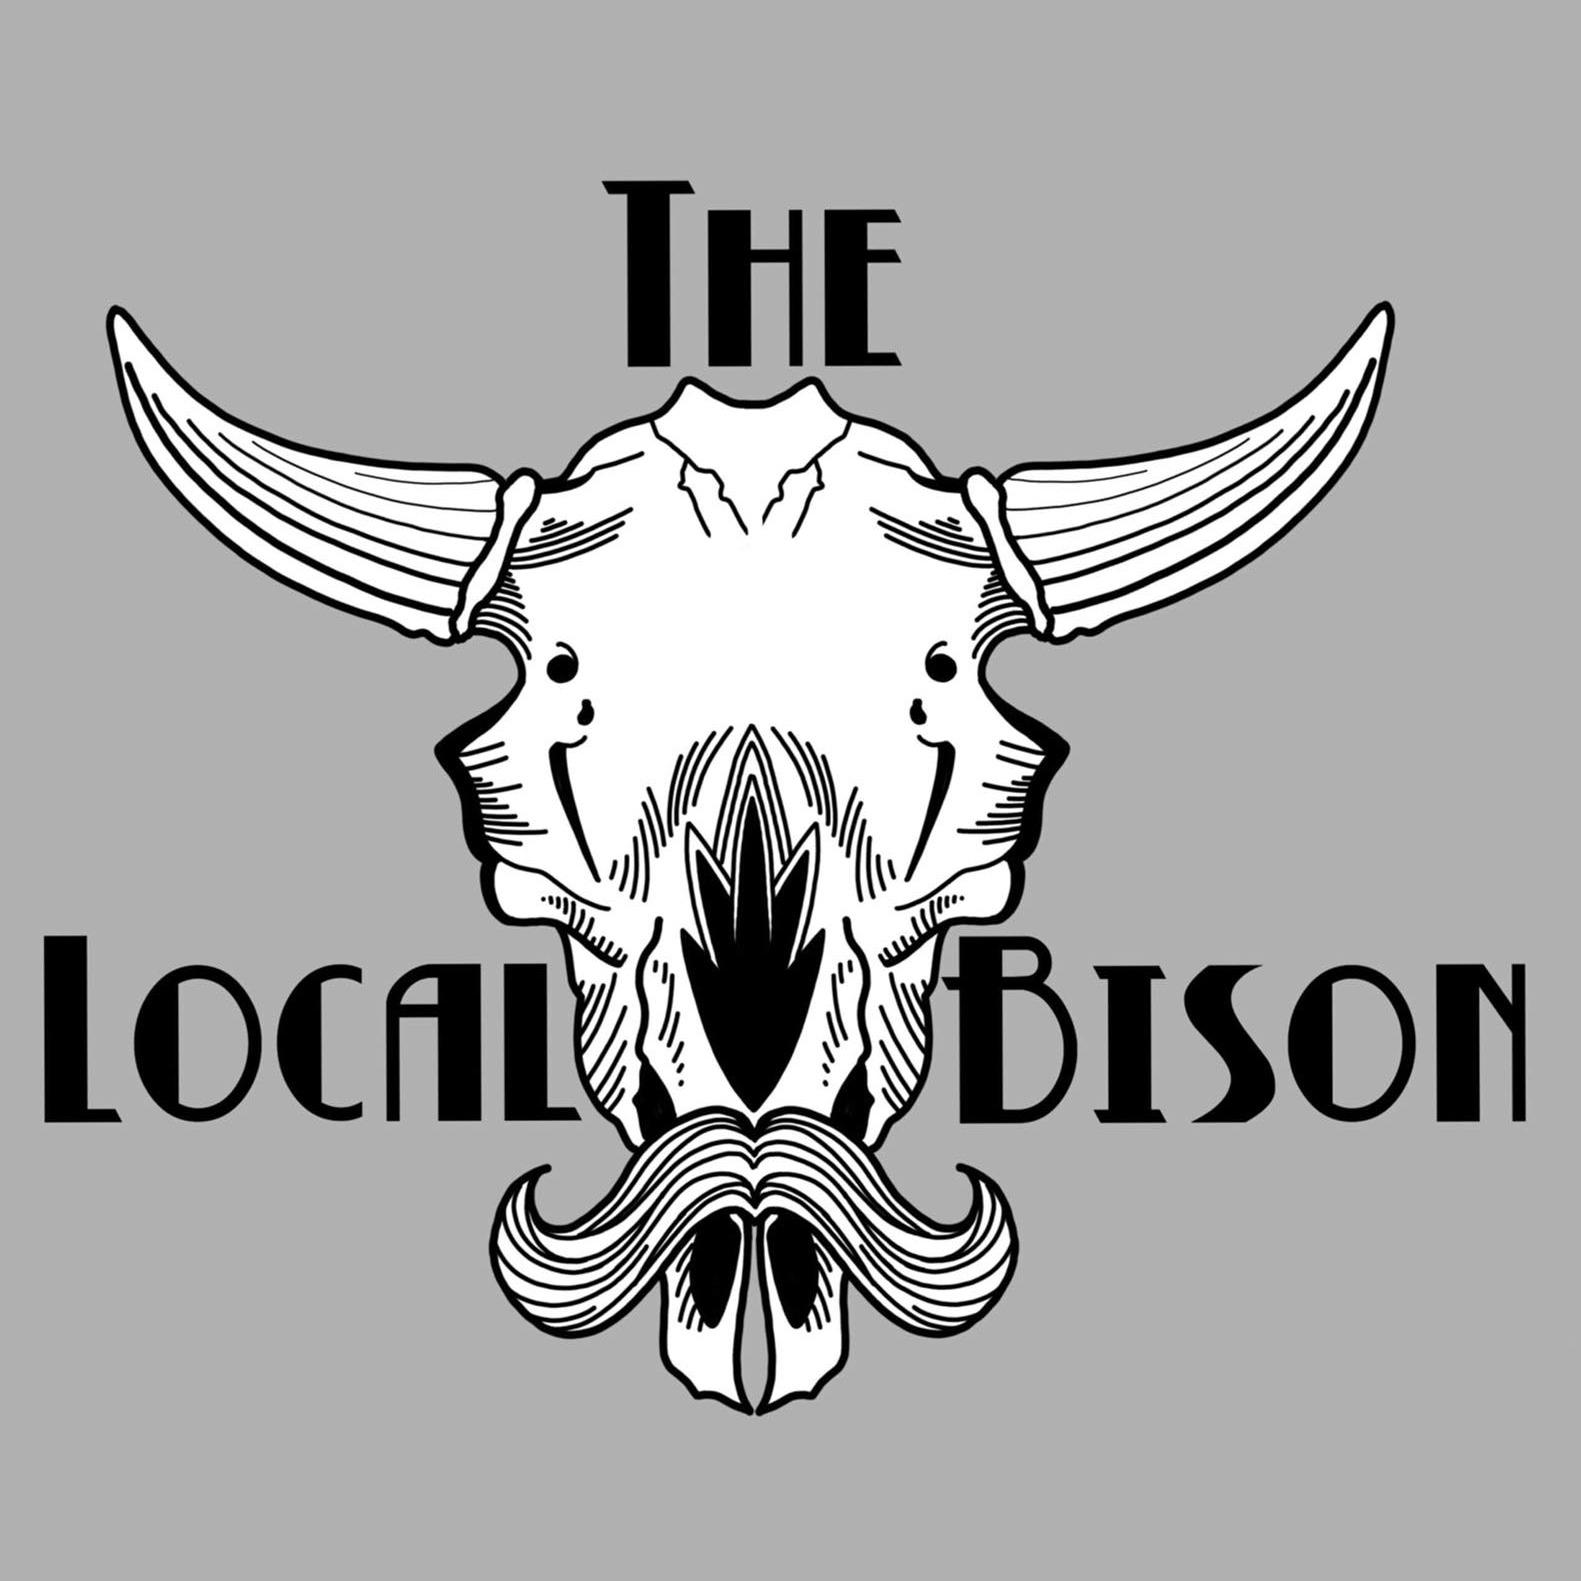 The Local Bison